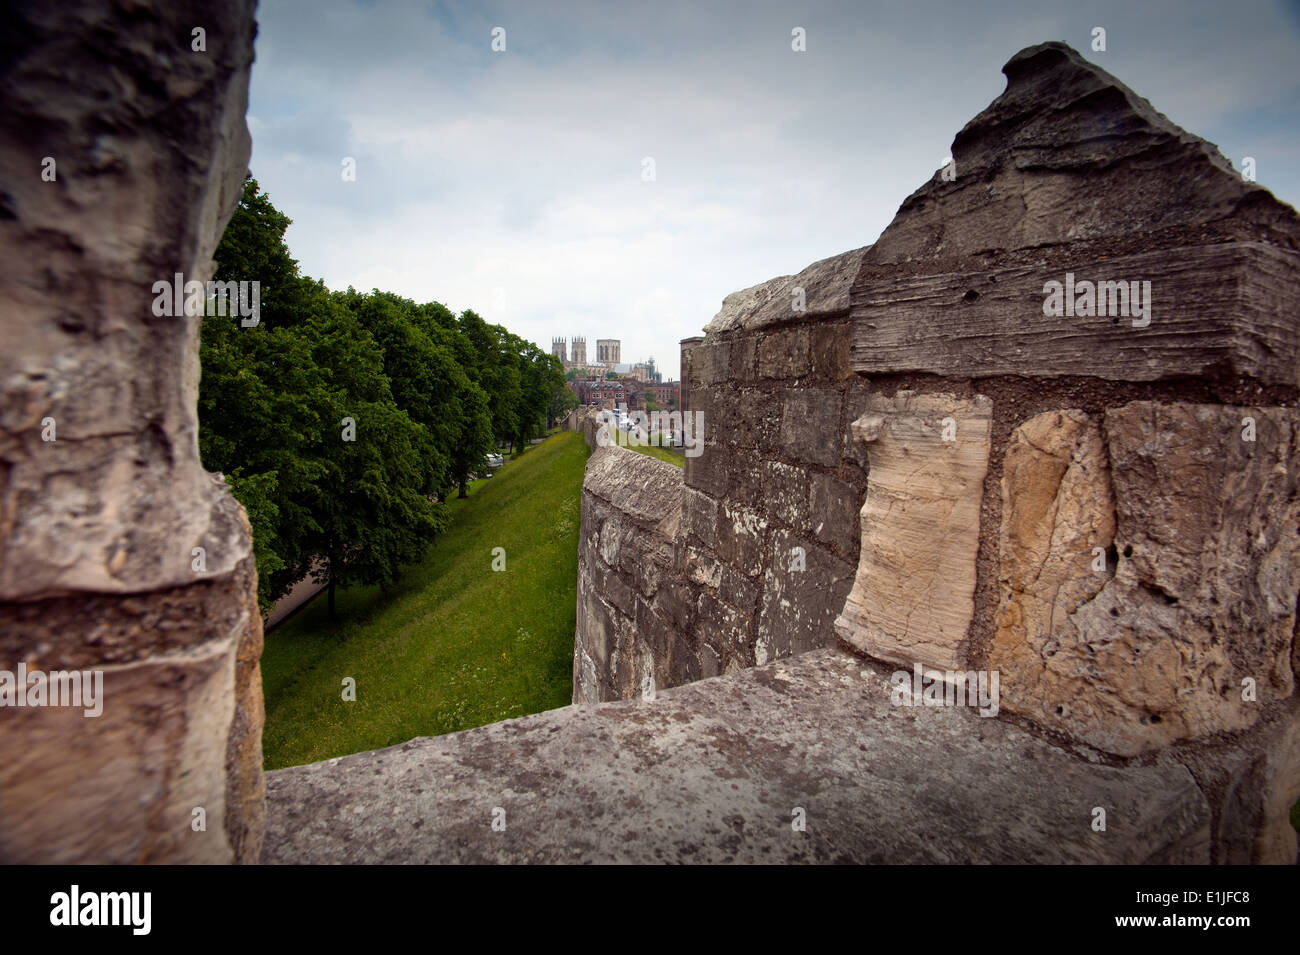 York Minster Cathedral, York, North Yorkshire, England,UK. June 2014 Seen from York City Walls based on original Roman Walls. - Stock Image